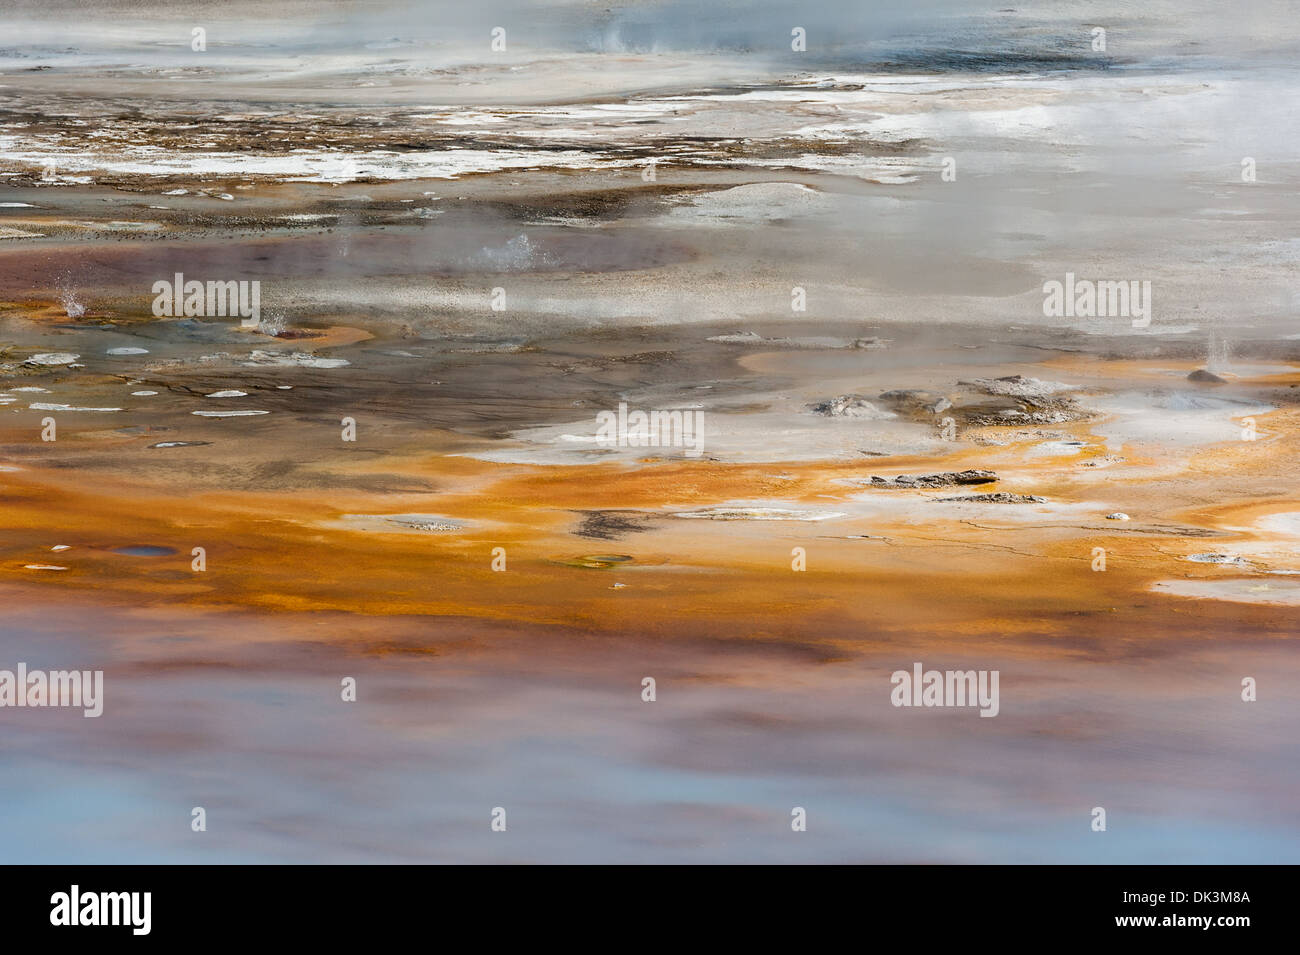 Photograph of the landscape and thermal features of the Porcelain Basin area. Yellowstone National Park, Wyoming. - Stock Image